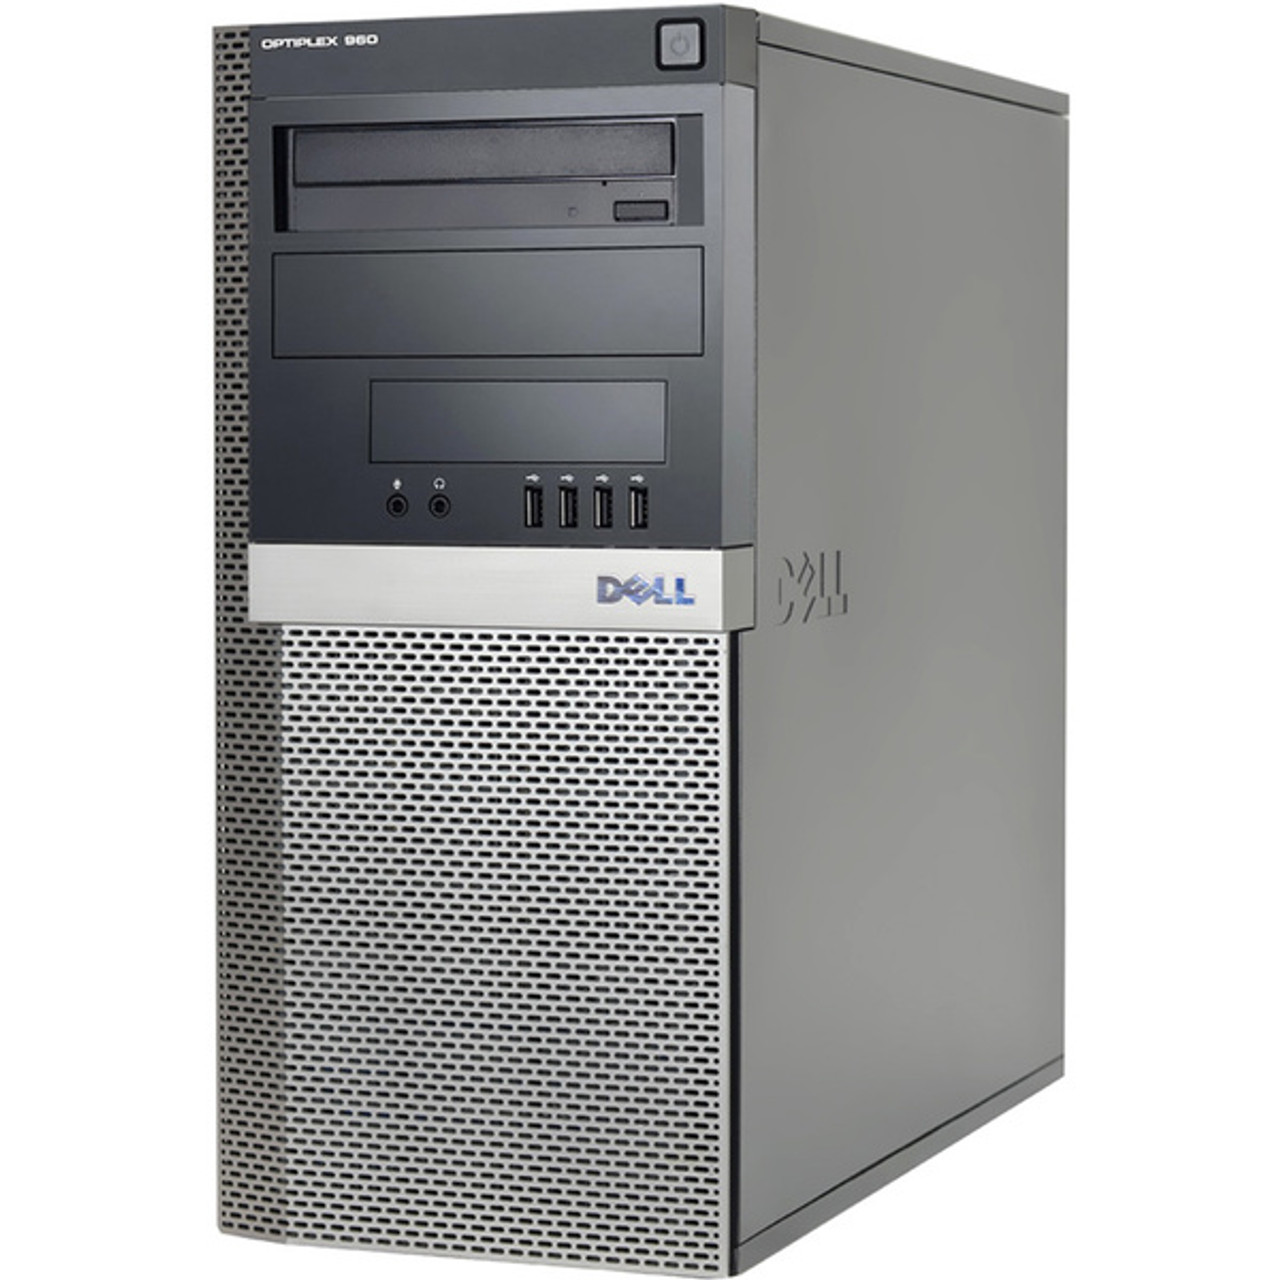 Dell Optiplex 960 Tower Intel Core 2 Duo 3.16GHz, 4GB Ram, 250GB HDD, DVD-RW, Windows 10 Pro 64 Desktop Computer